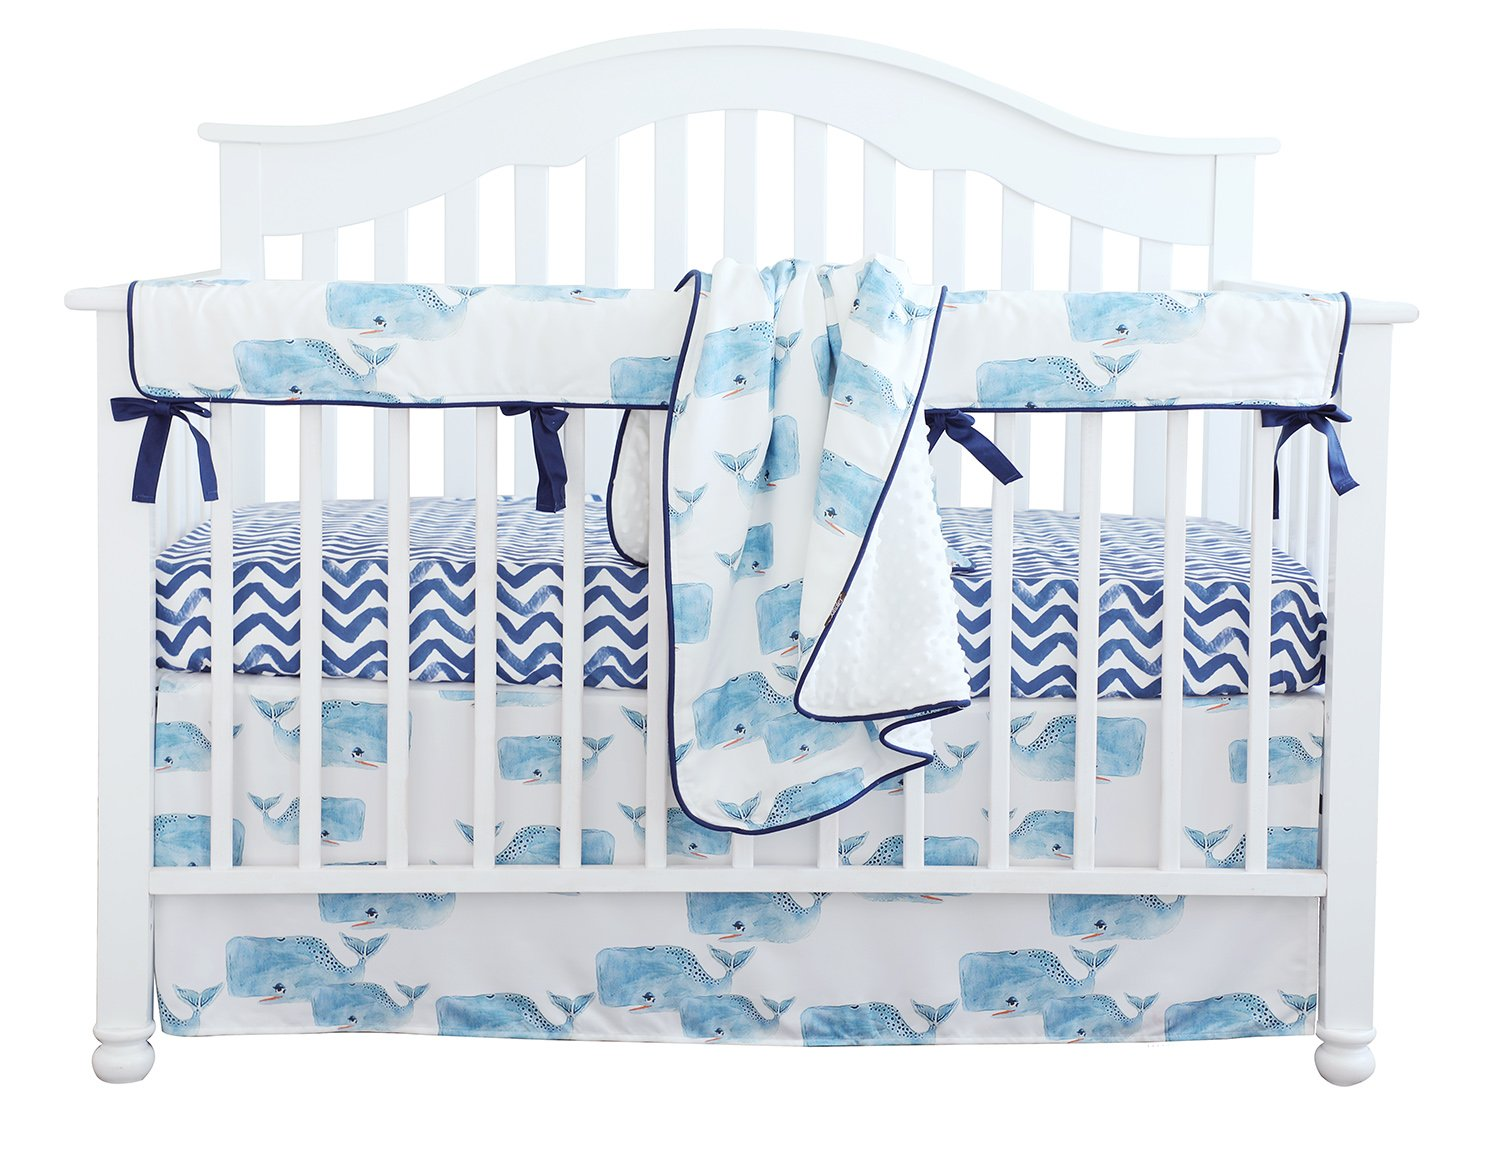 Baby Boy Crib Bedding Set Whale Nursery Crib Skirt Set Minky Blanket Navy Crib Sheet Crib Rail Bedding Set 4 pieces set (4 pieces set)